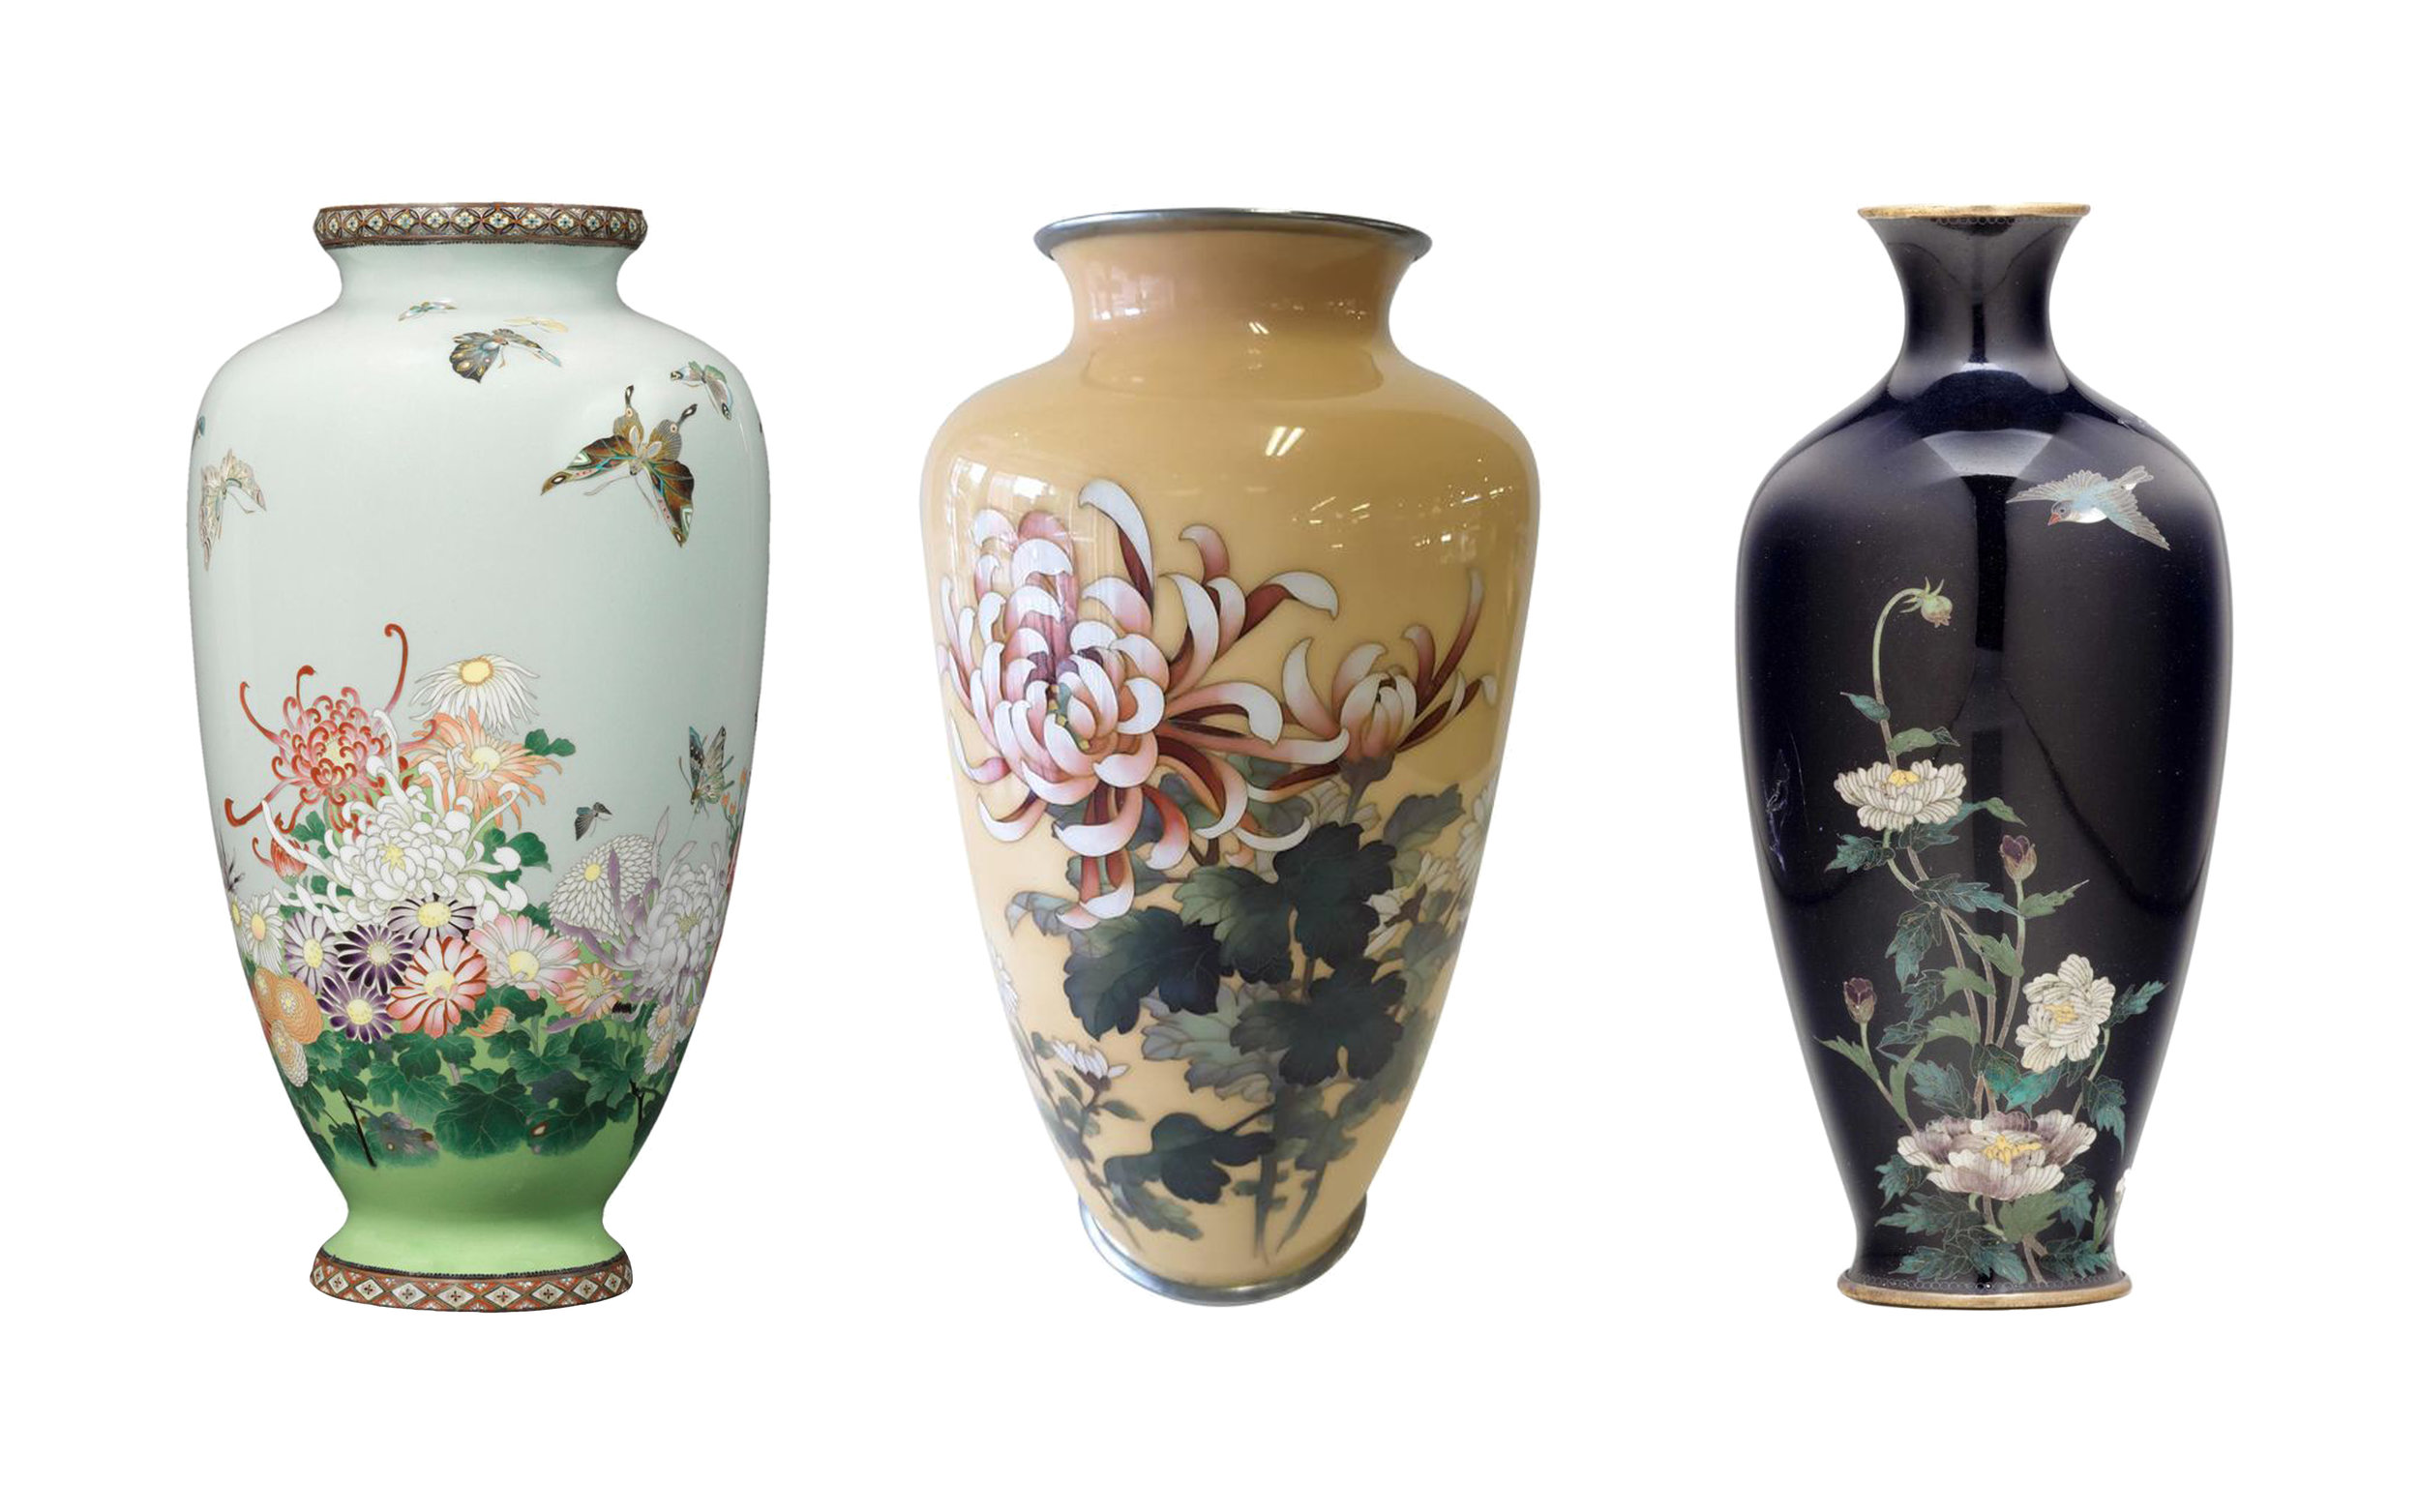 Three vases:  center signed Ando Jubei, available at 1st Dibs, right signed Kin'unken, available through Christie's.